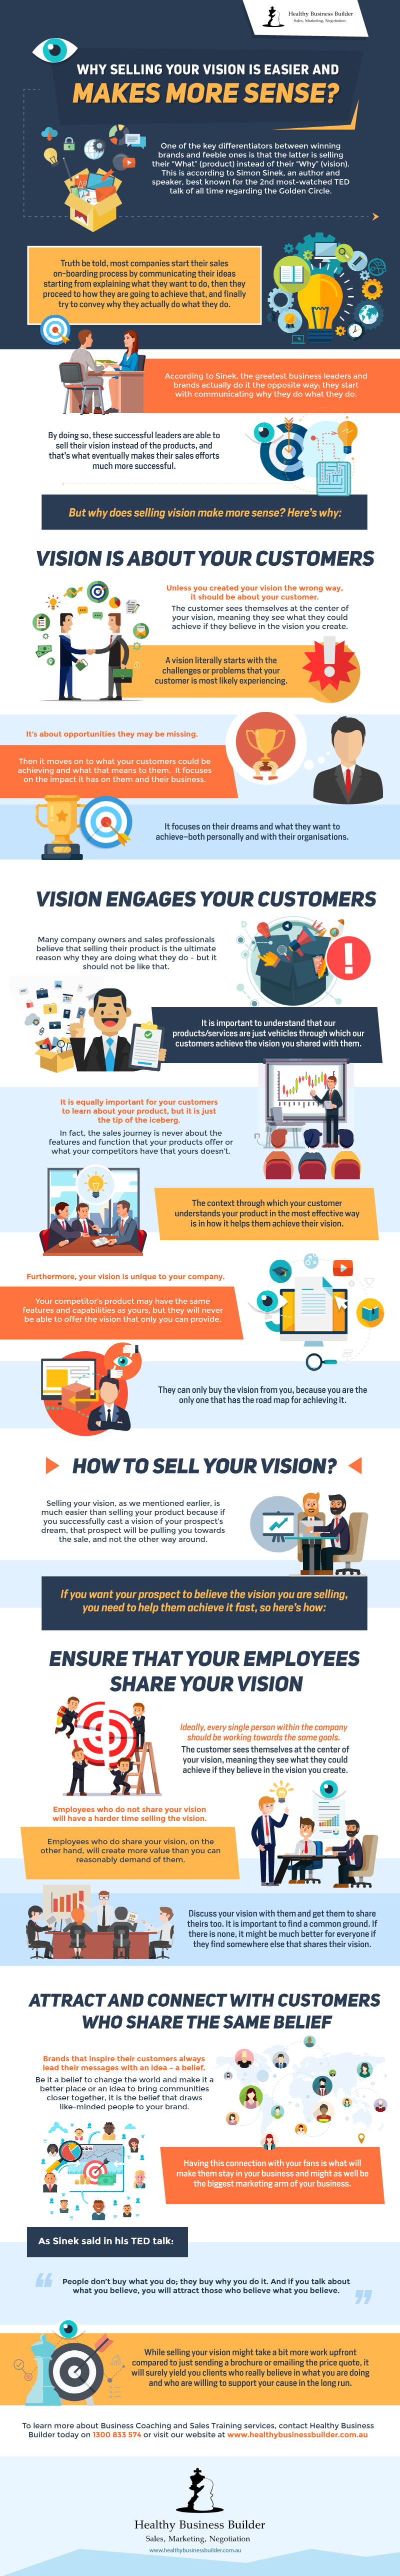 Why Selling Your Vision is Easier and Makes More Sense?